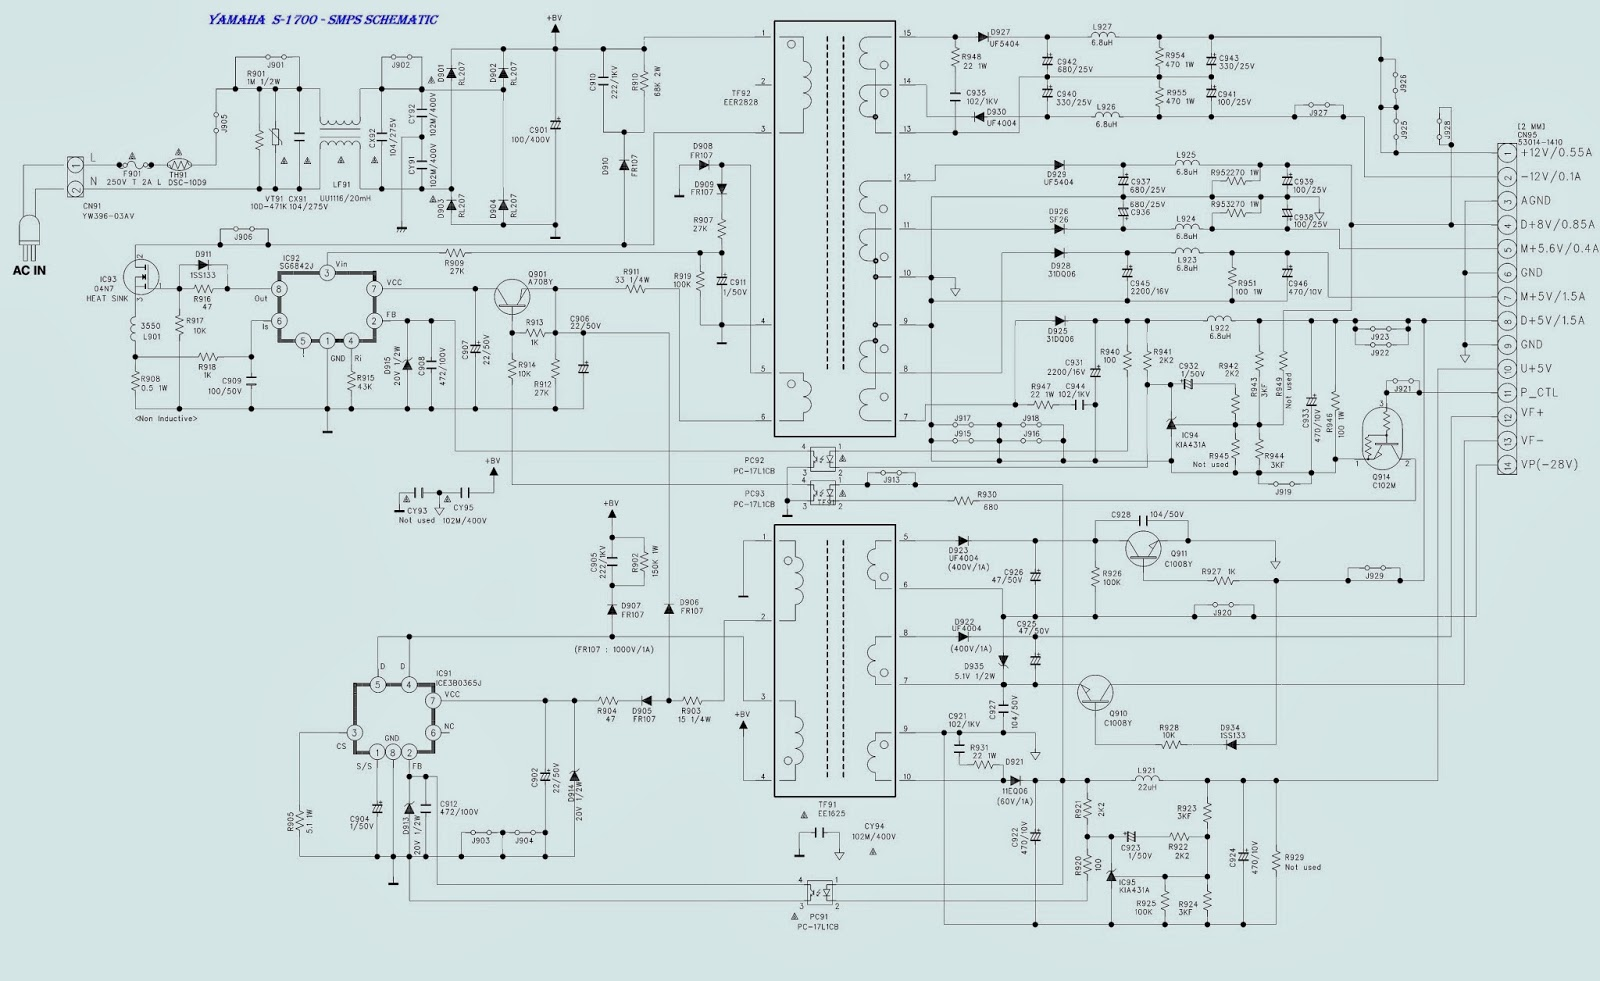 medium resolution of dvd s1700 smps power supply schematic circuit diagram dvd 6000 power supply smps schematic circuit digram electro help